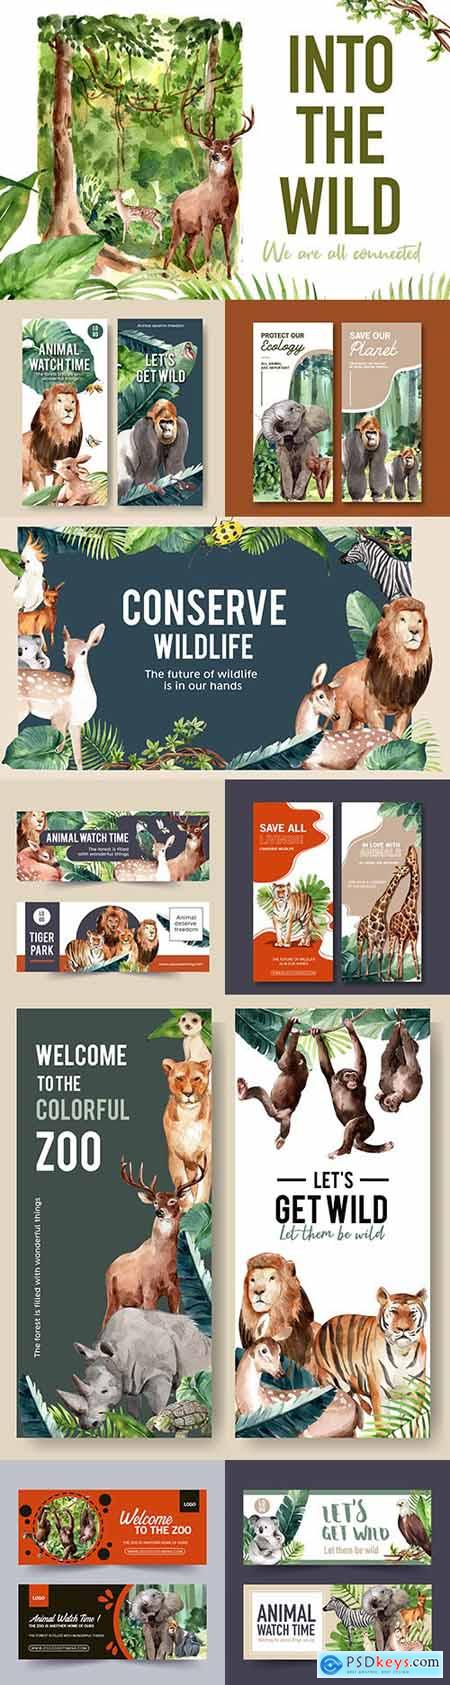 Zoo banner design with animal watercolor illustrations